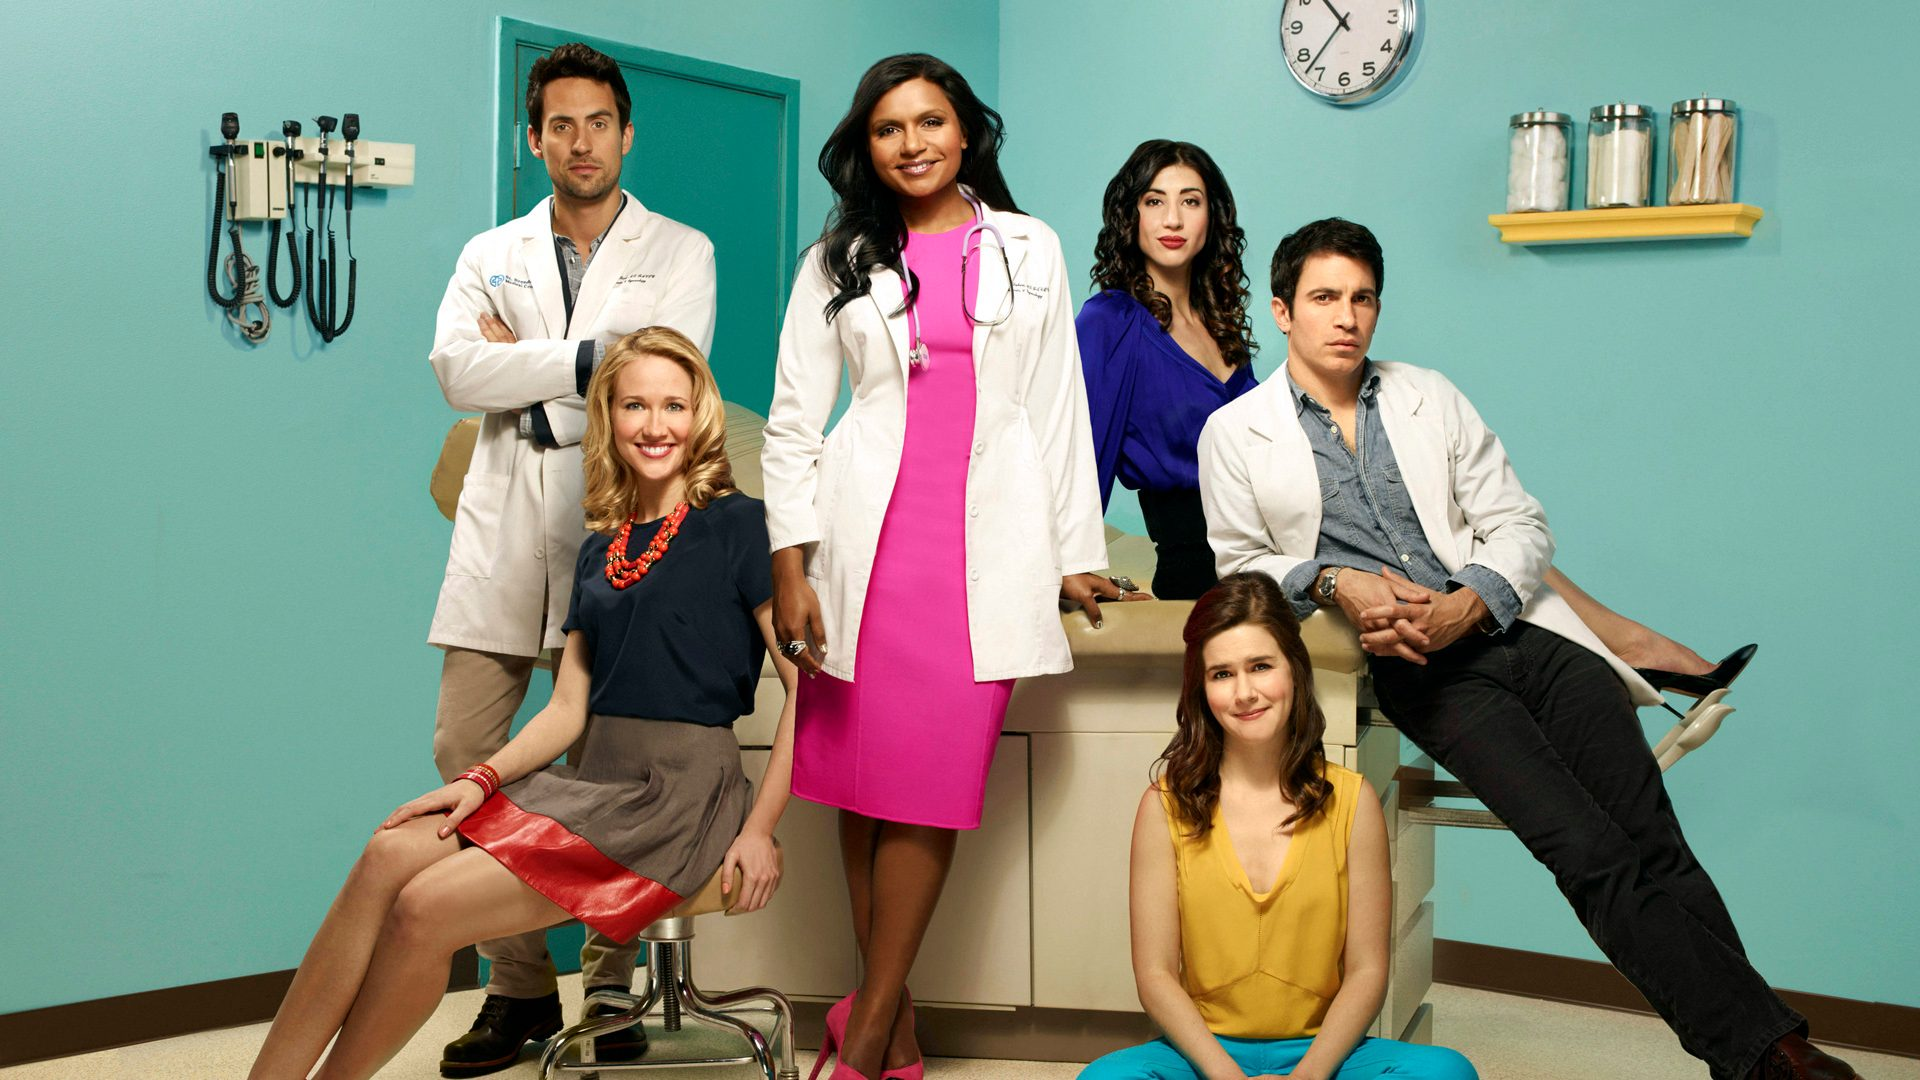 'The Mindy Project' Releases Season Four Trailer